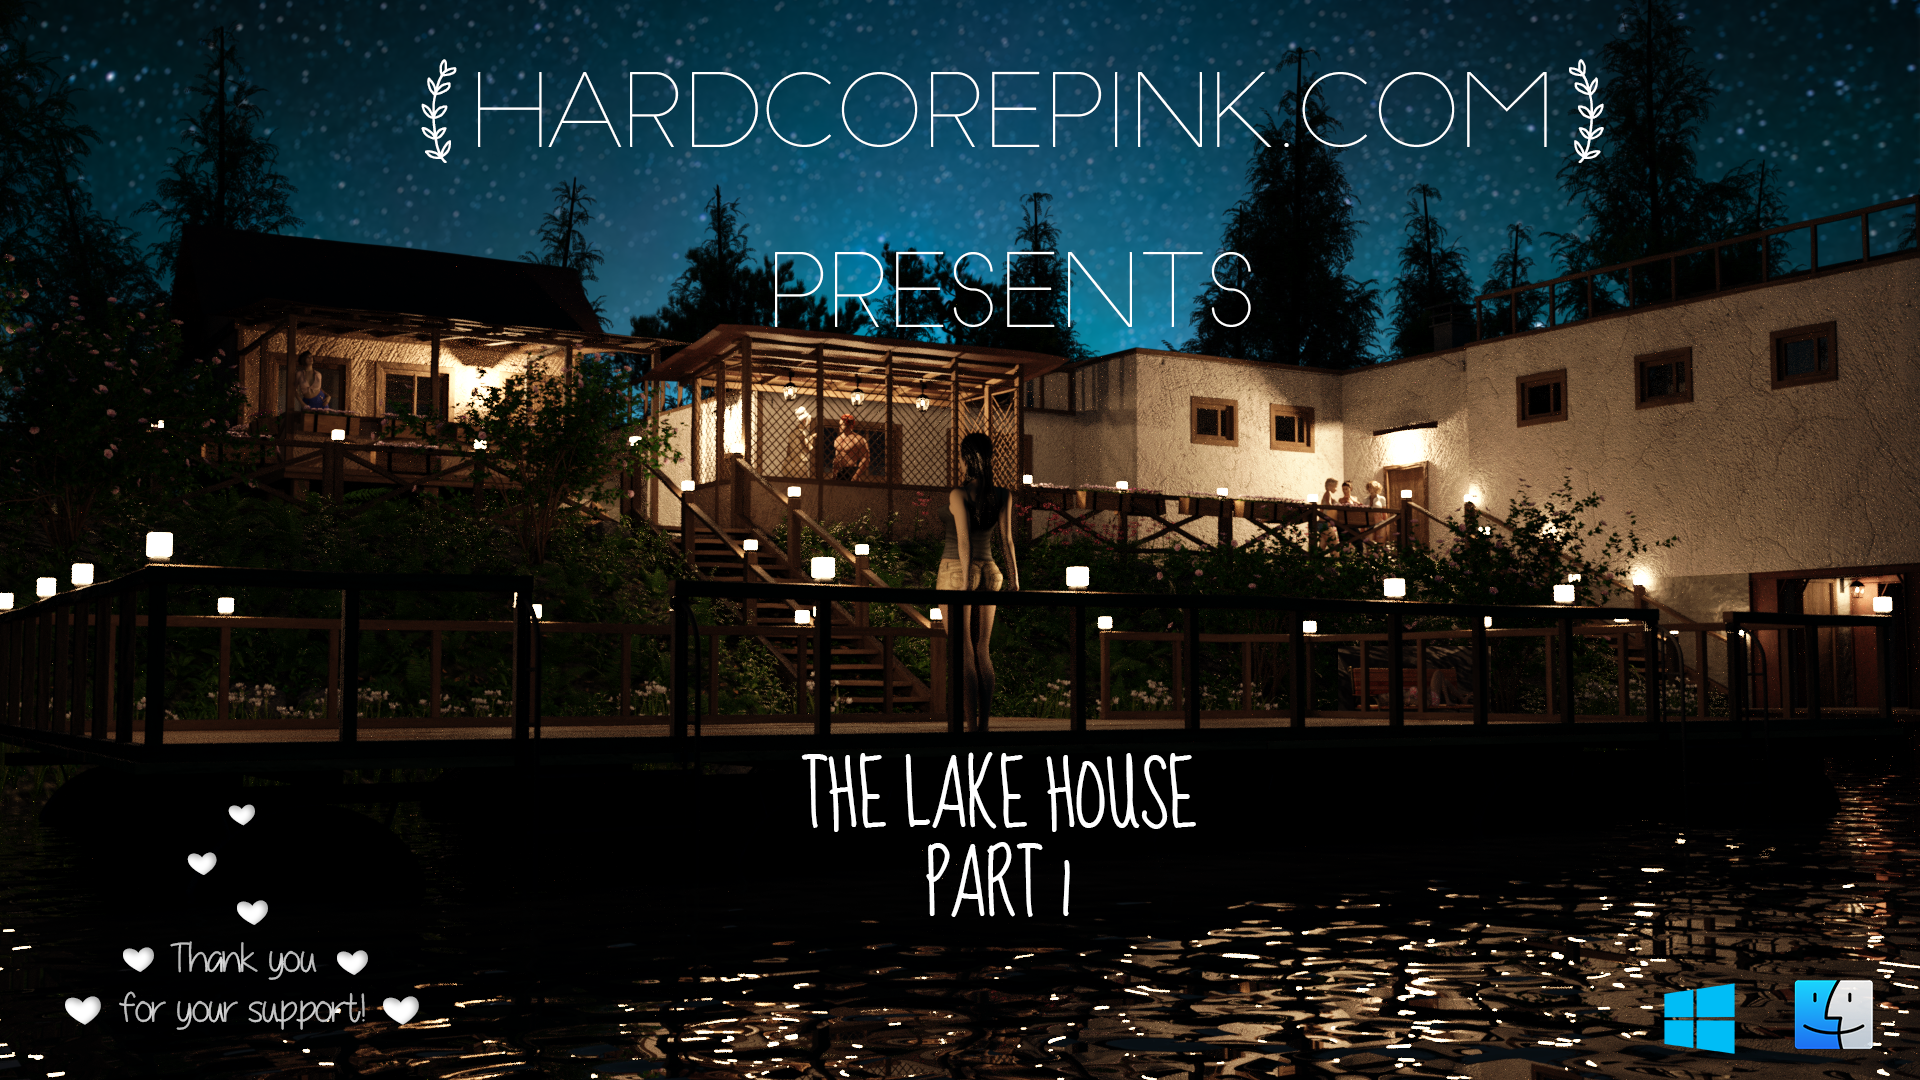 Hardcore Pink - The Lake House Part 1 - Adult Comic (NSFW)